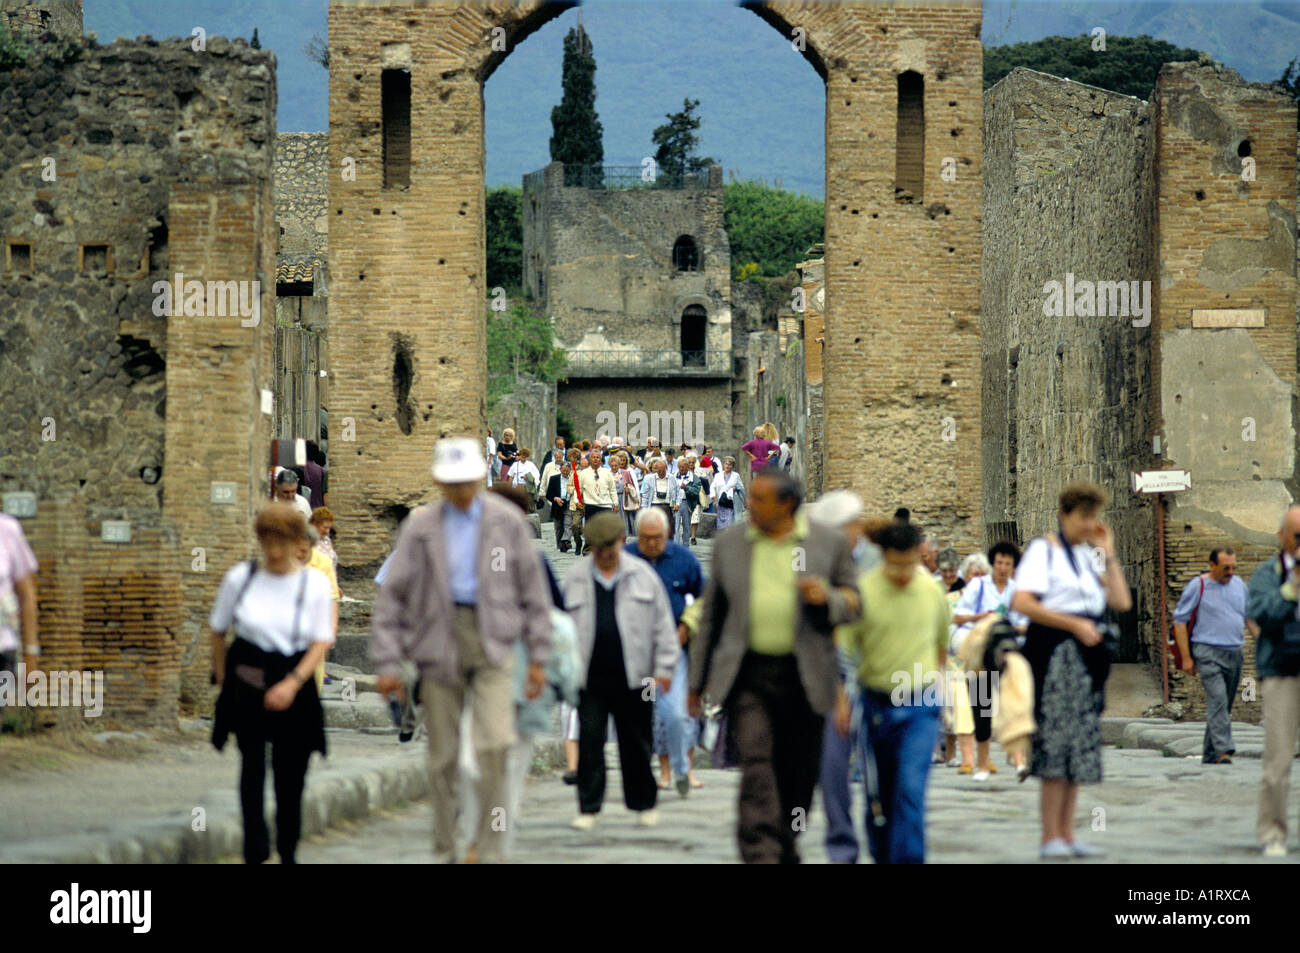 TOUIRISTS WALKING THROUGH ARCHWAY WHILE VISITING THE ANCIENT ROMAN RUINS AT POMPEI Stock Photo